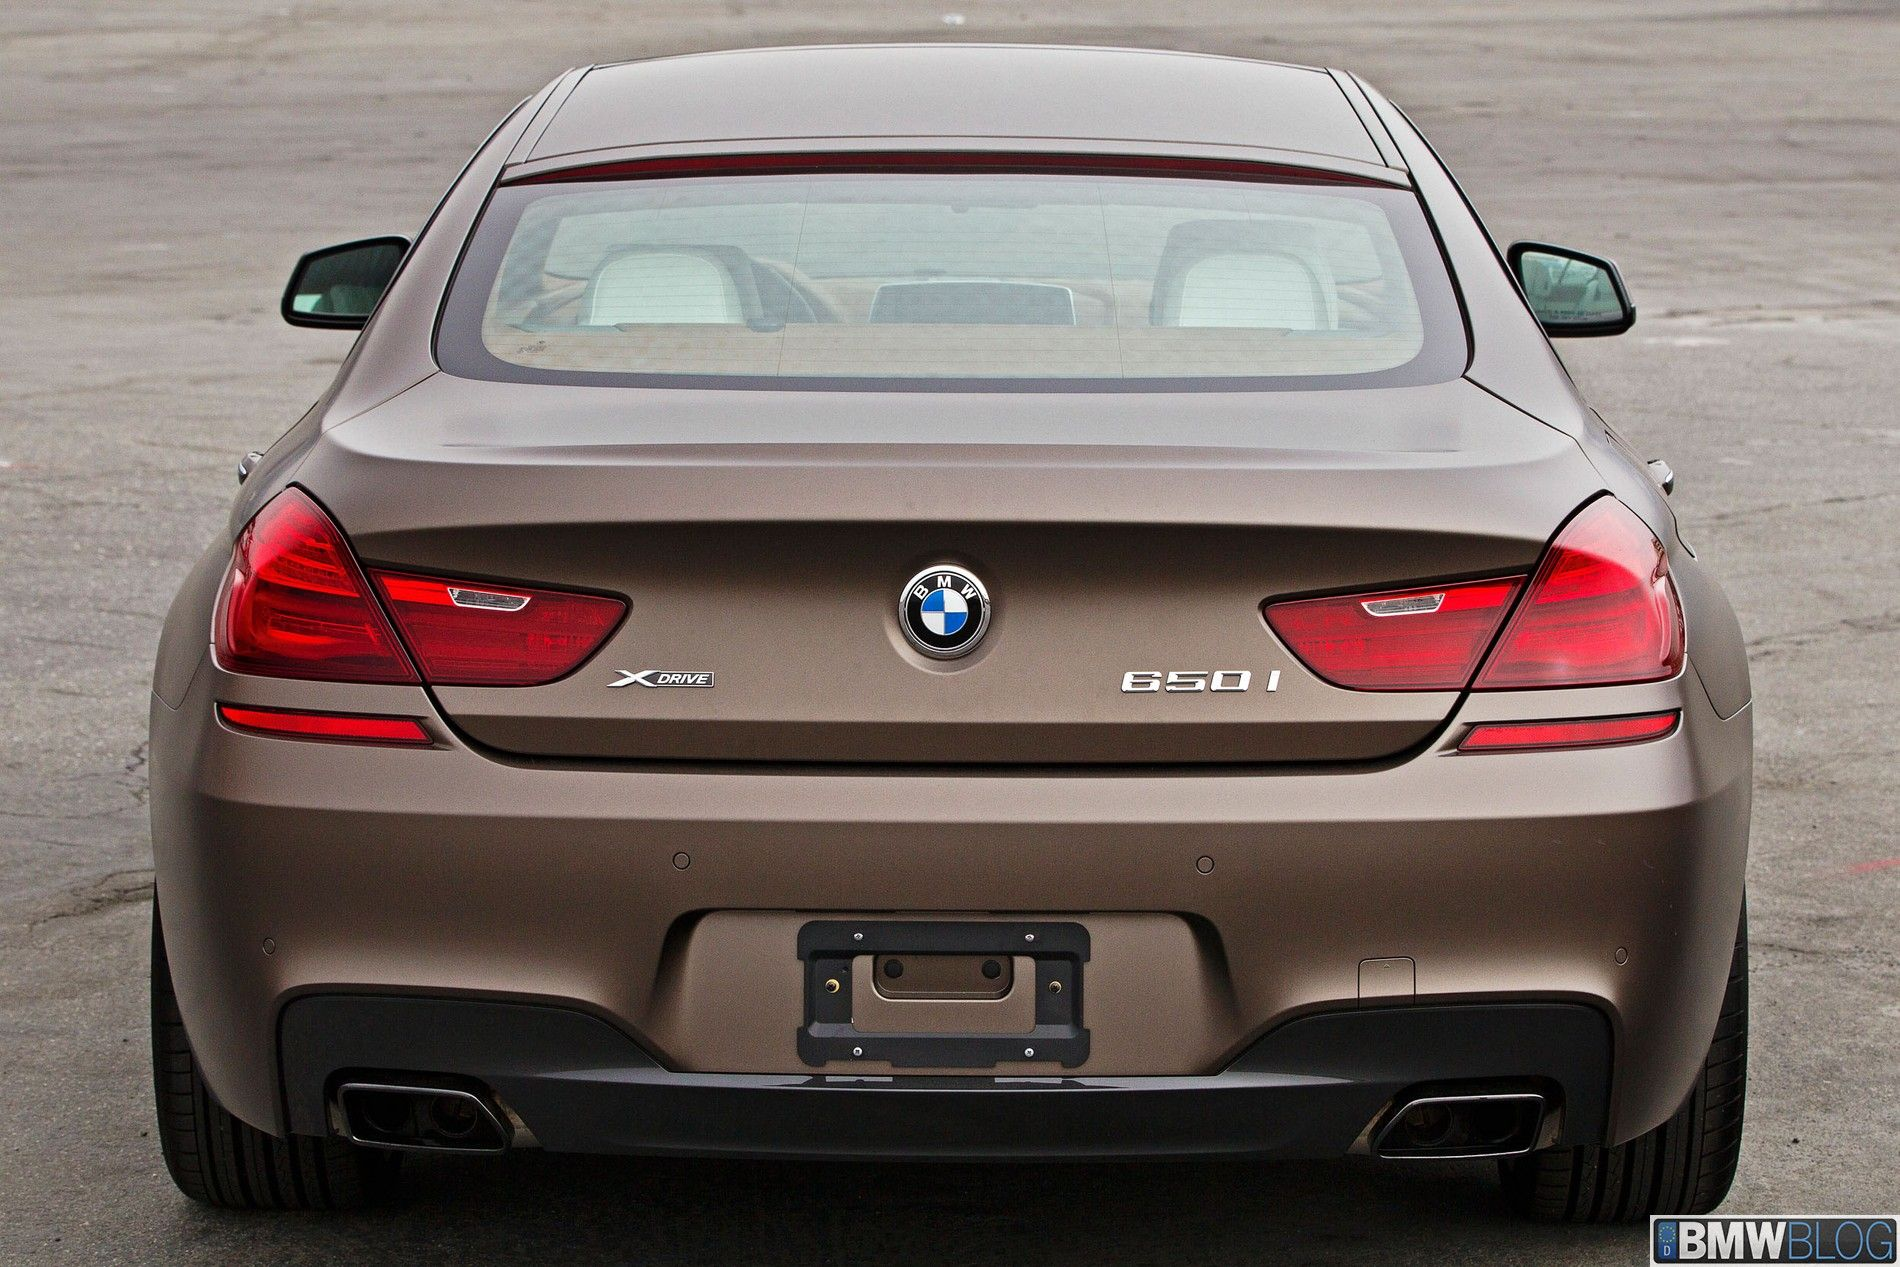 650I Gran Coupe >> Bmw 650i Gran Coupe Road Review Bmw 650i Gran Coupe The